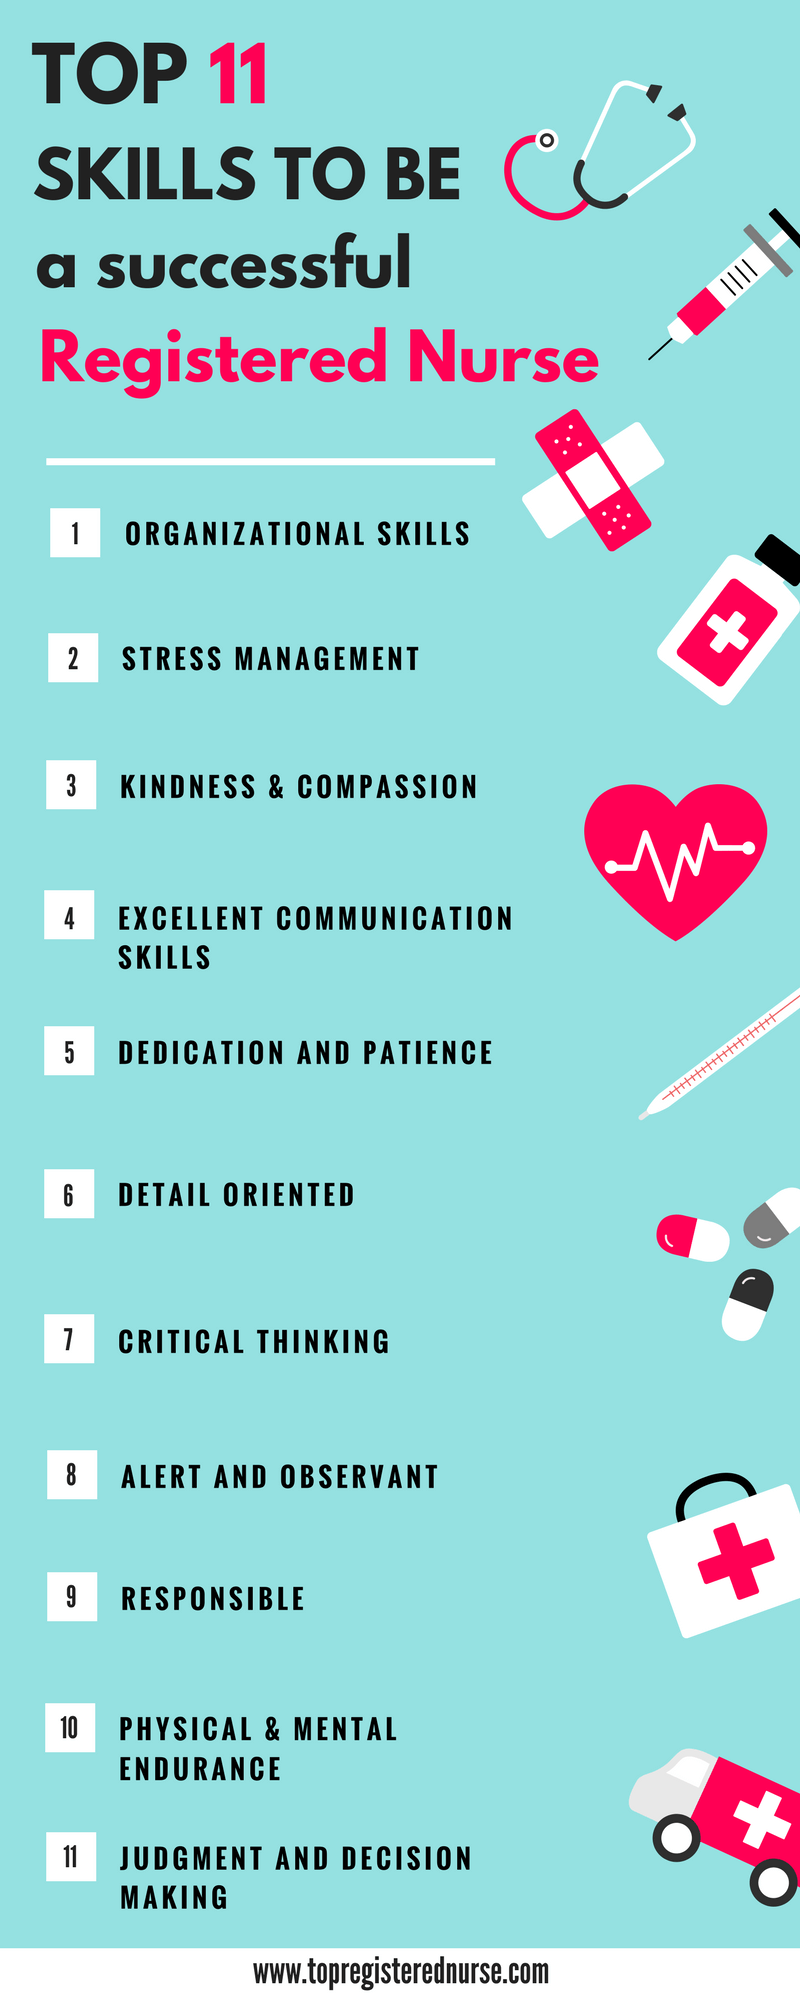 Top 11 Skills for a Successful Registered Nurse